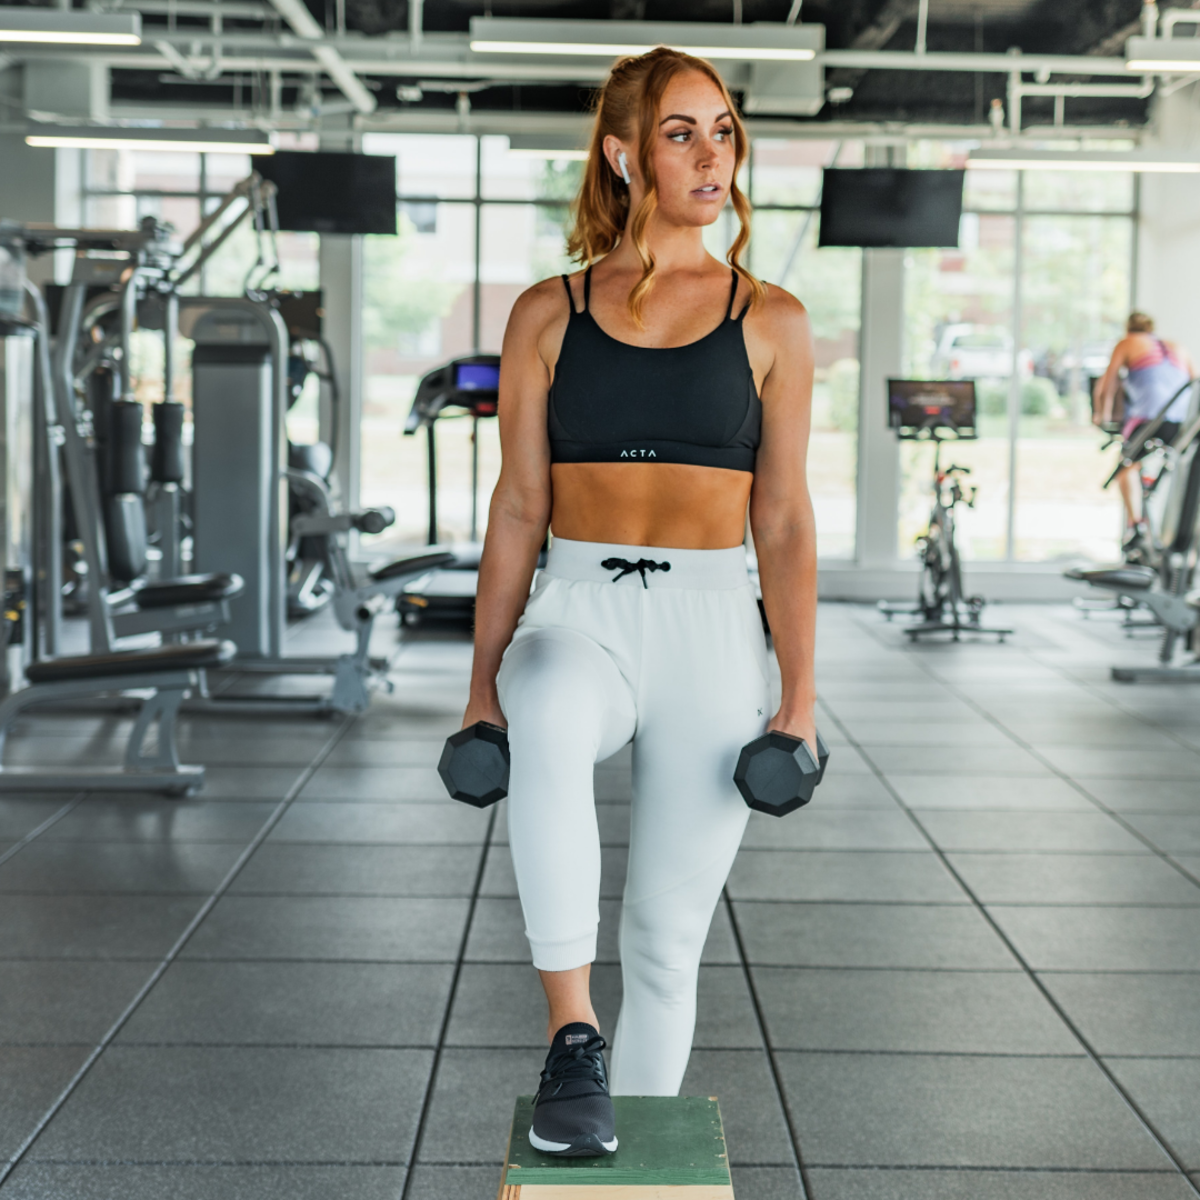 Don't stare at girls while they're working out—they came to the gym to exercise, not to be creeped on by strange men.